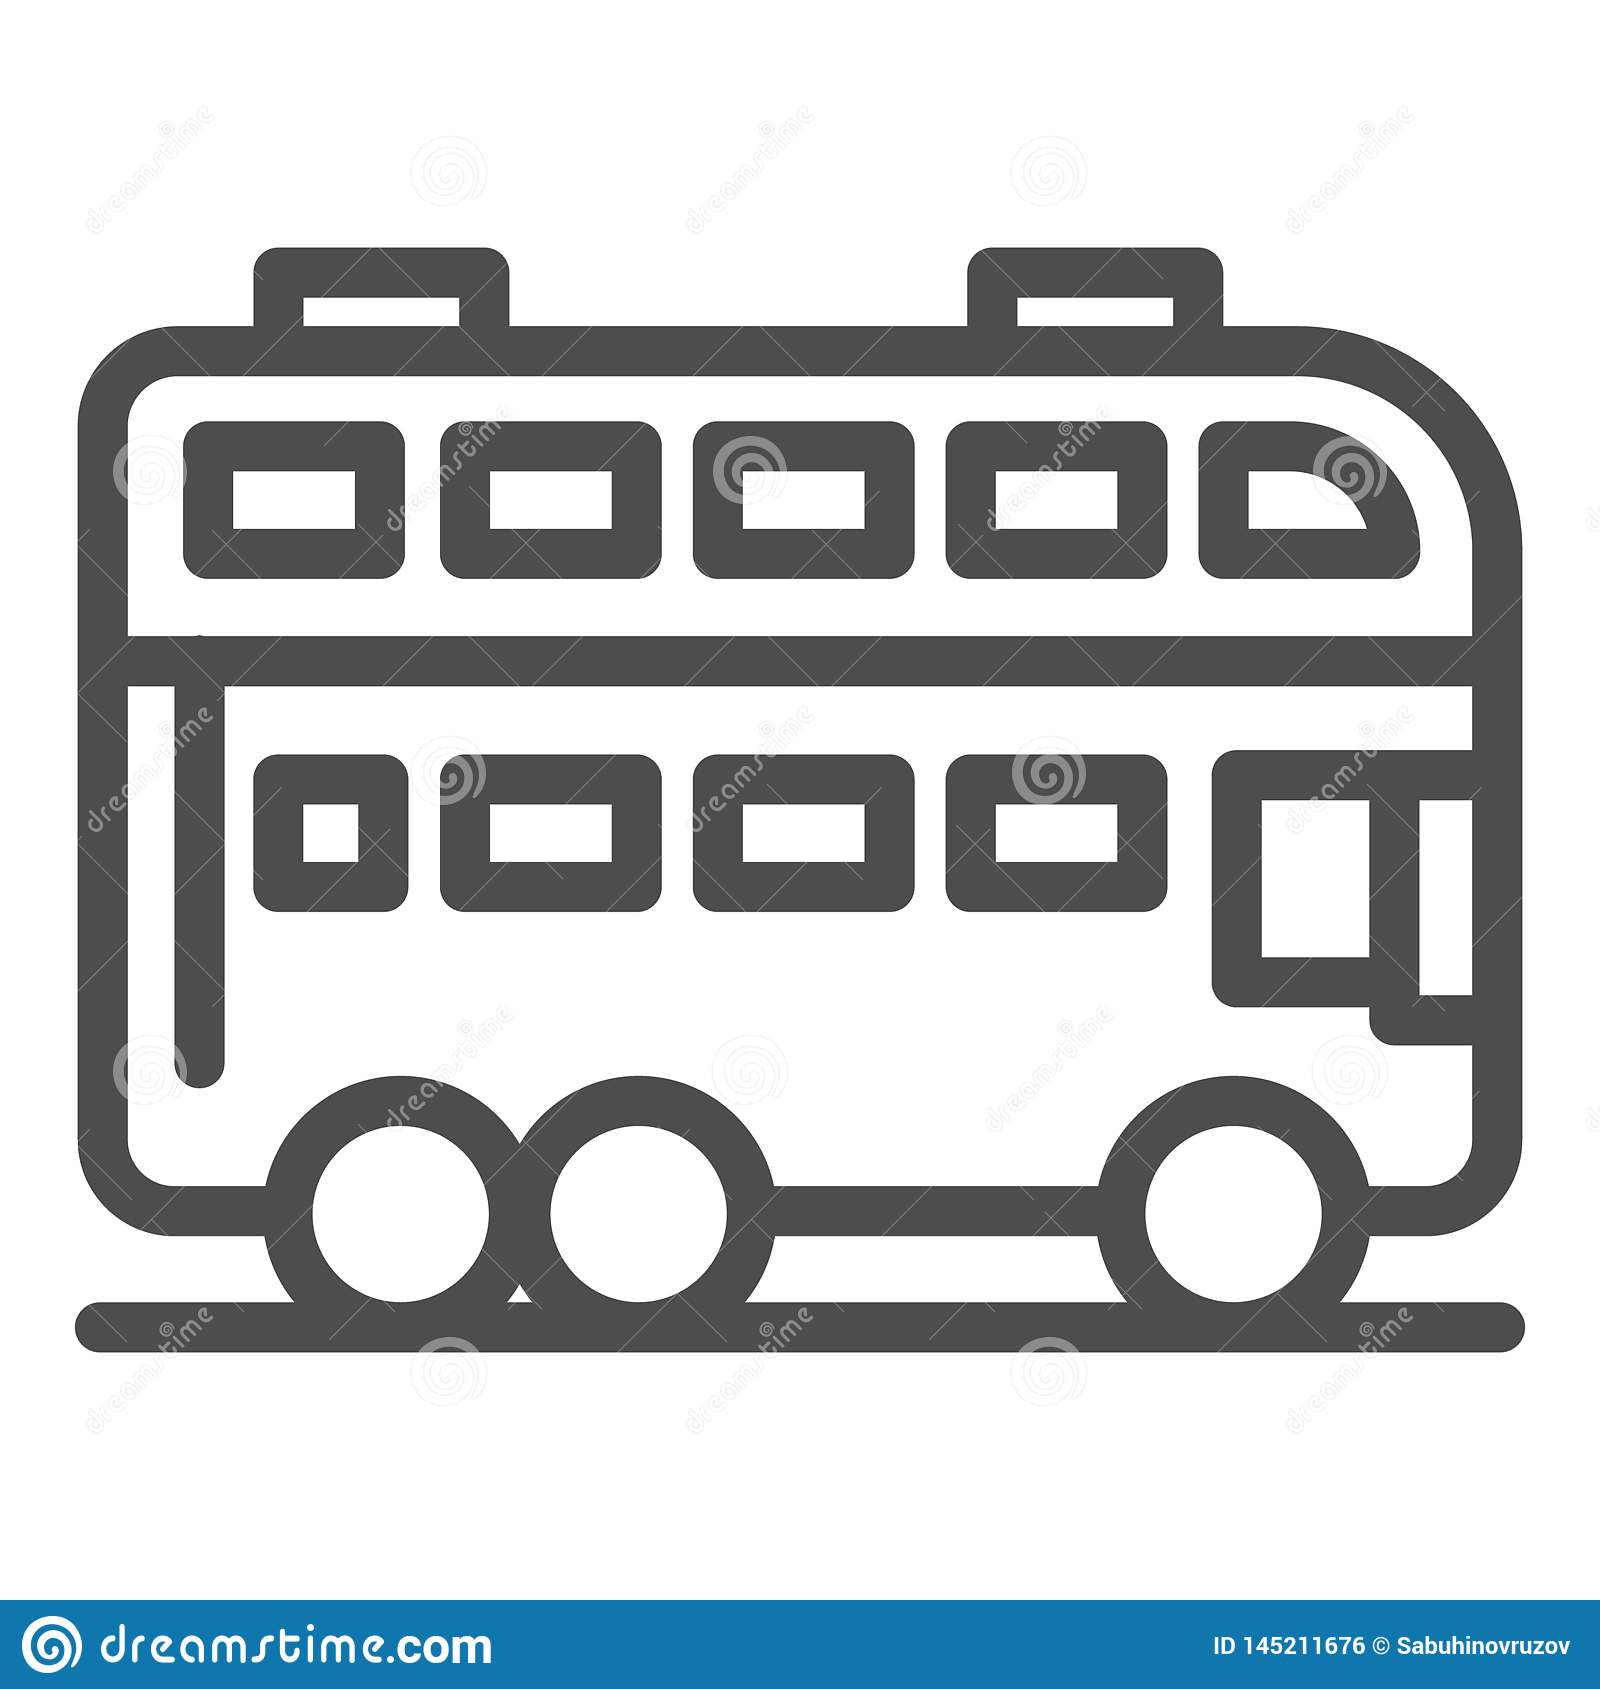 London bus line icon. Double decker bus vector illustration isolated on white. Travel outline style design, designed for